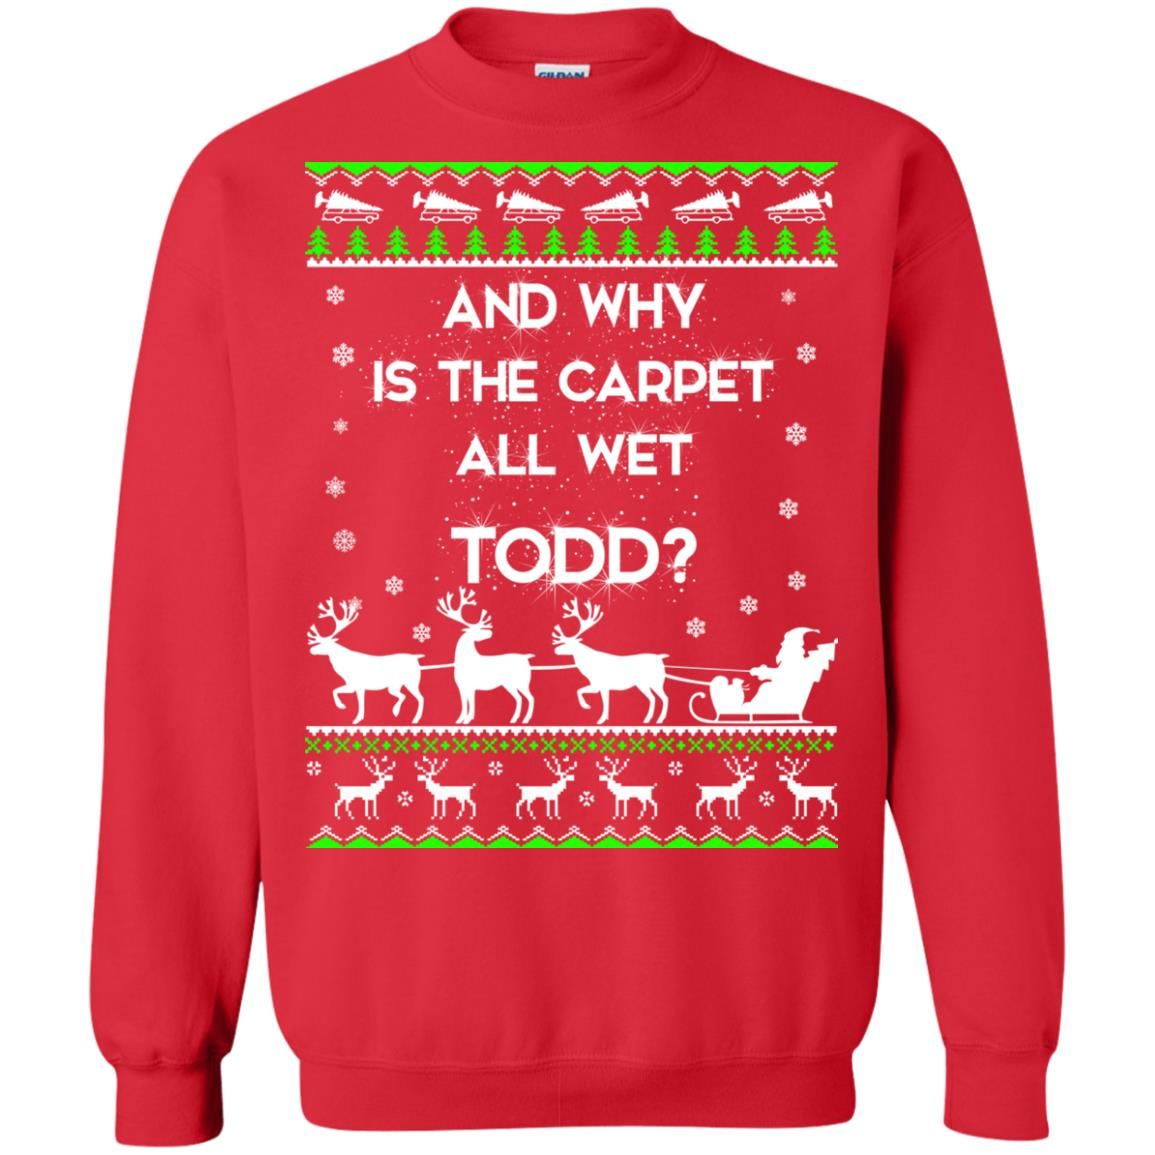 image 1609 - Christmas Vacation: And why is carpet all wet TODD ulgy sweater, hoodie